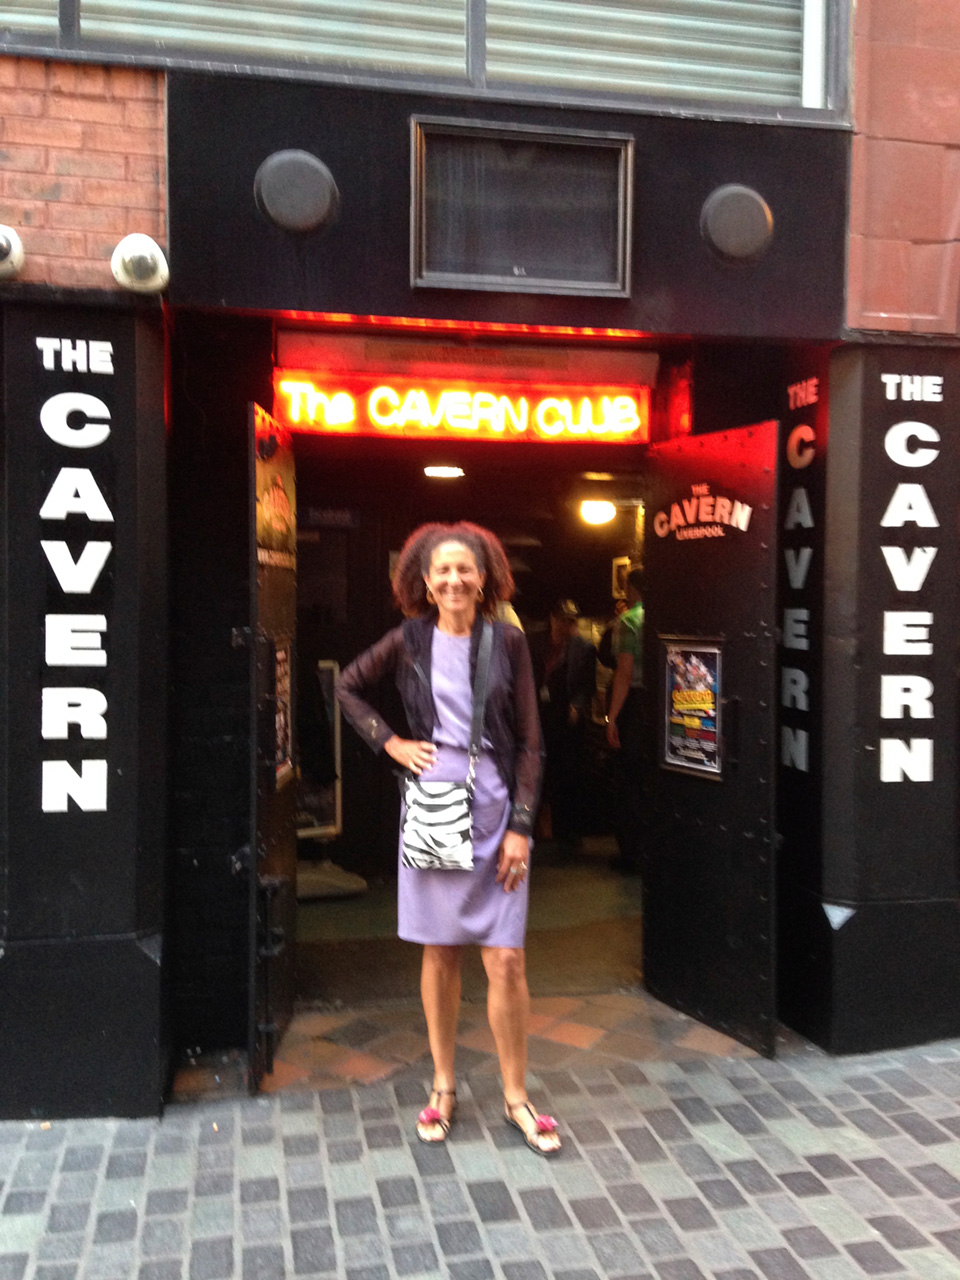 Alison Rose Jefferson at the entrance to Liverpool's famous Cavern Club. 24 June 2015. (click to enlarge)